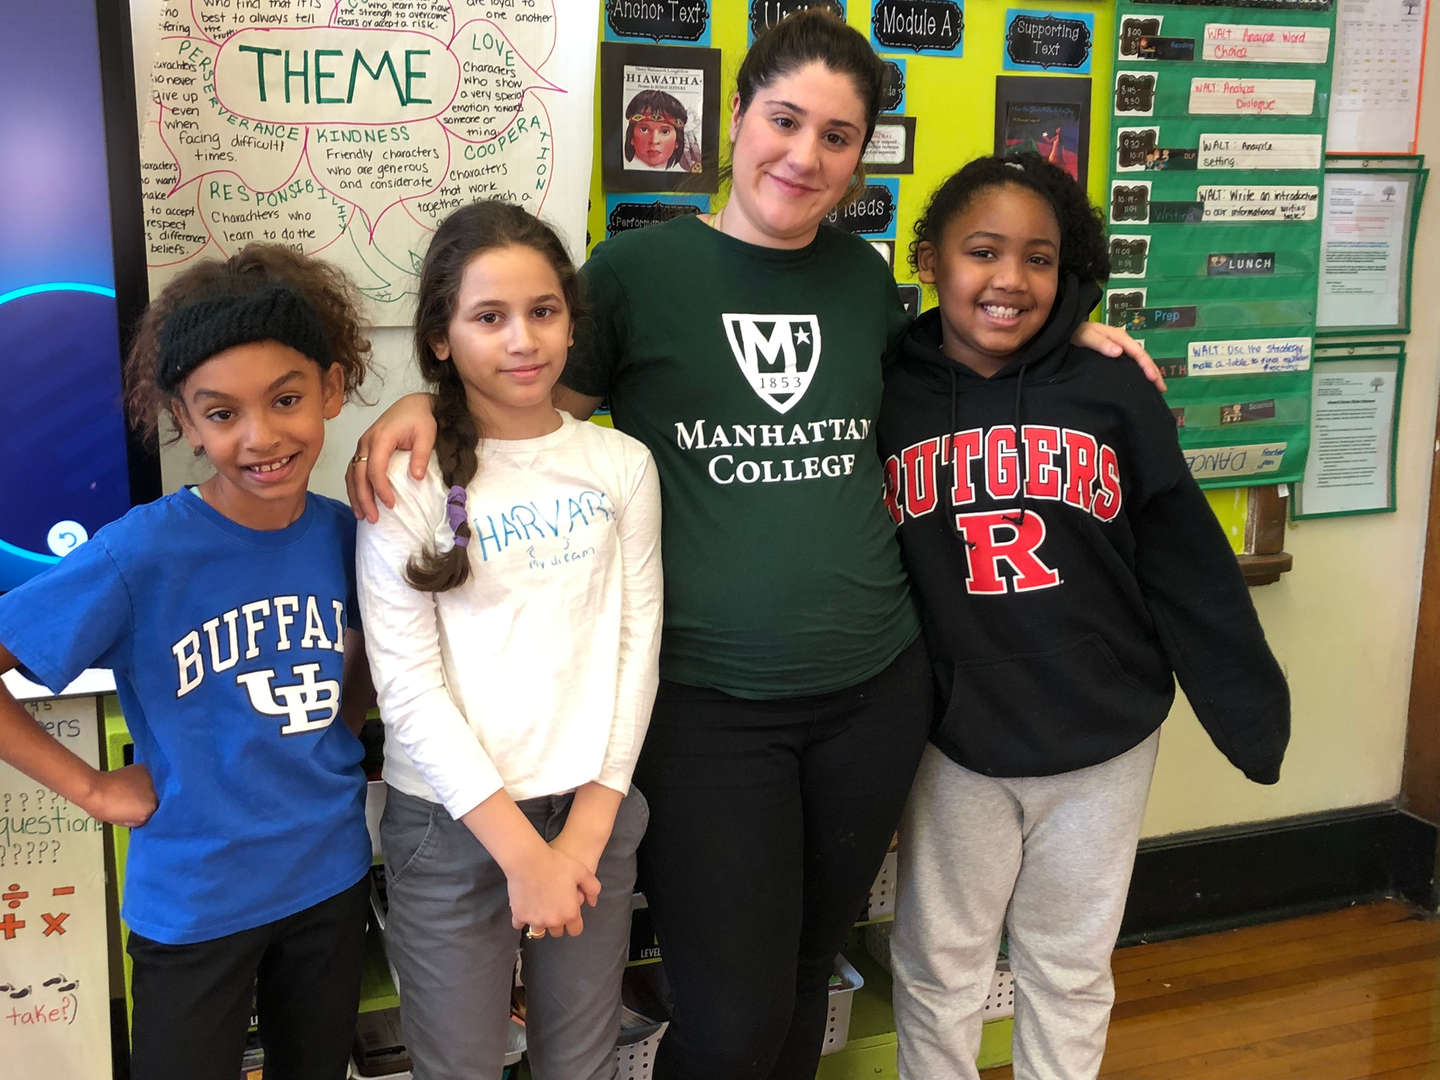 A group of 4th graders with their teacher in college gear.